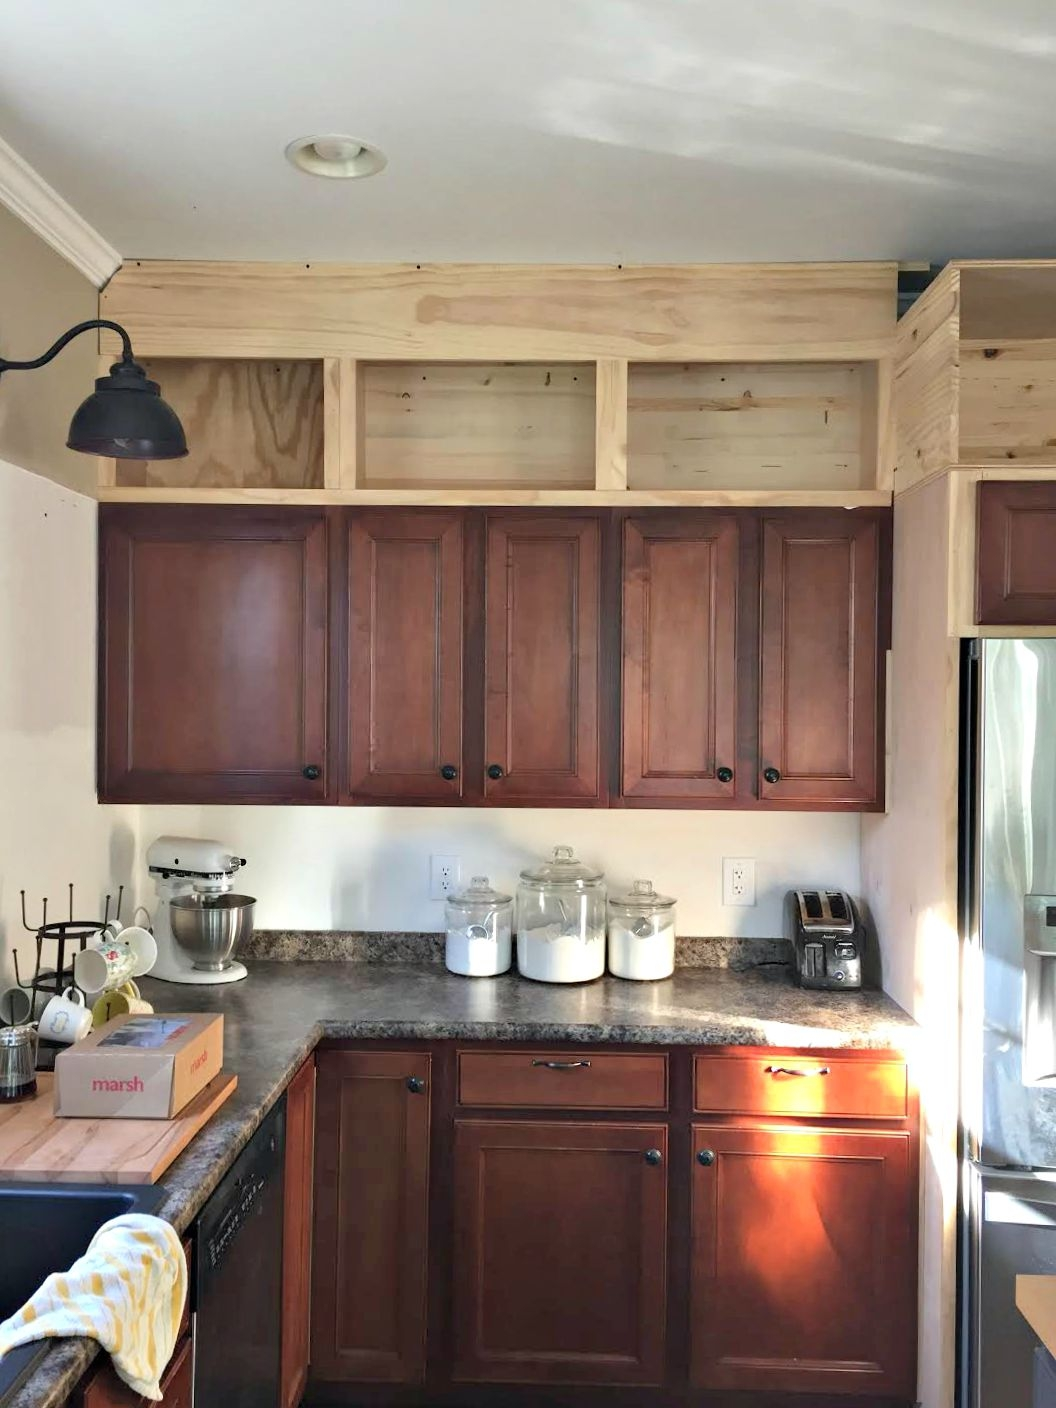 Adding Upper Kitchen Cabinets